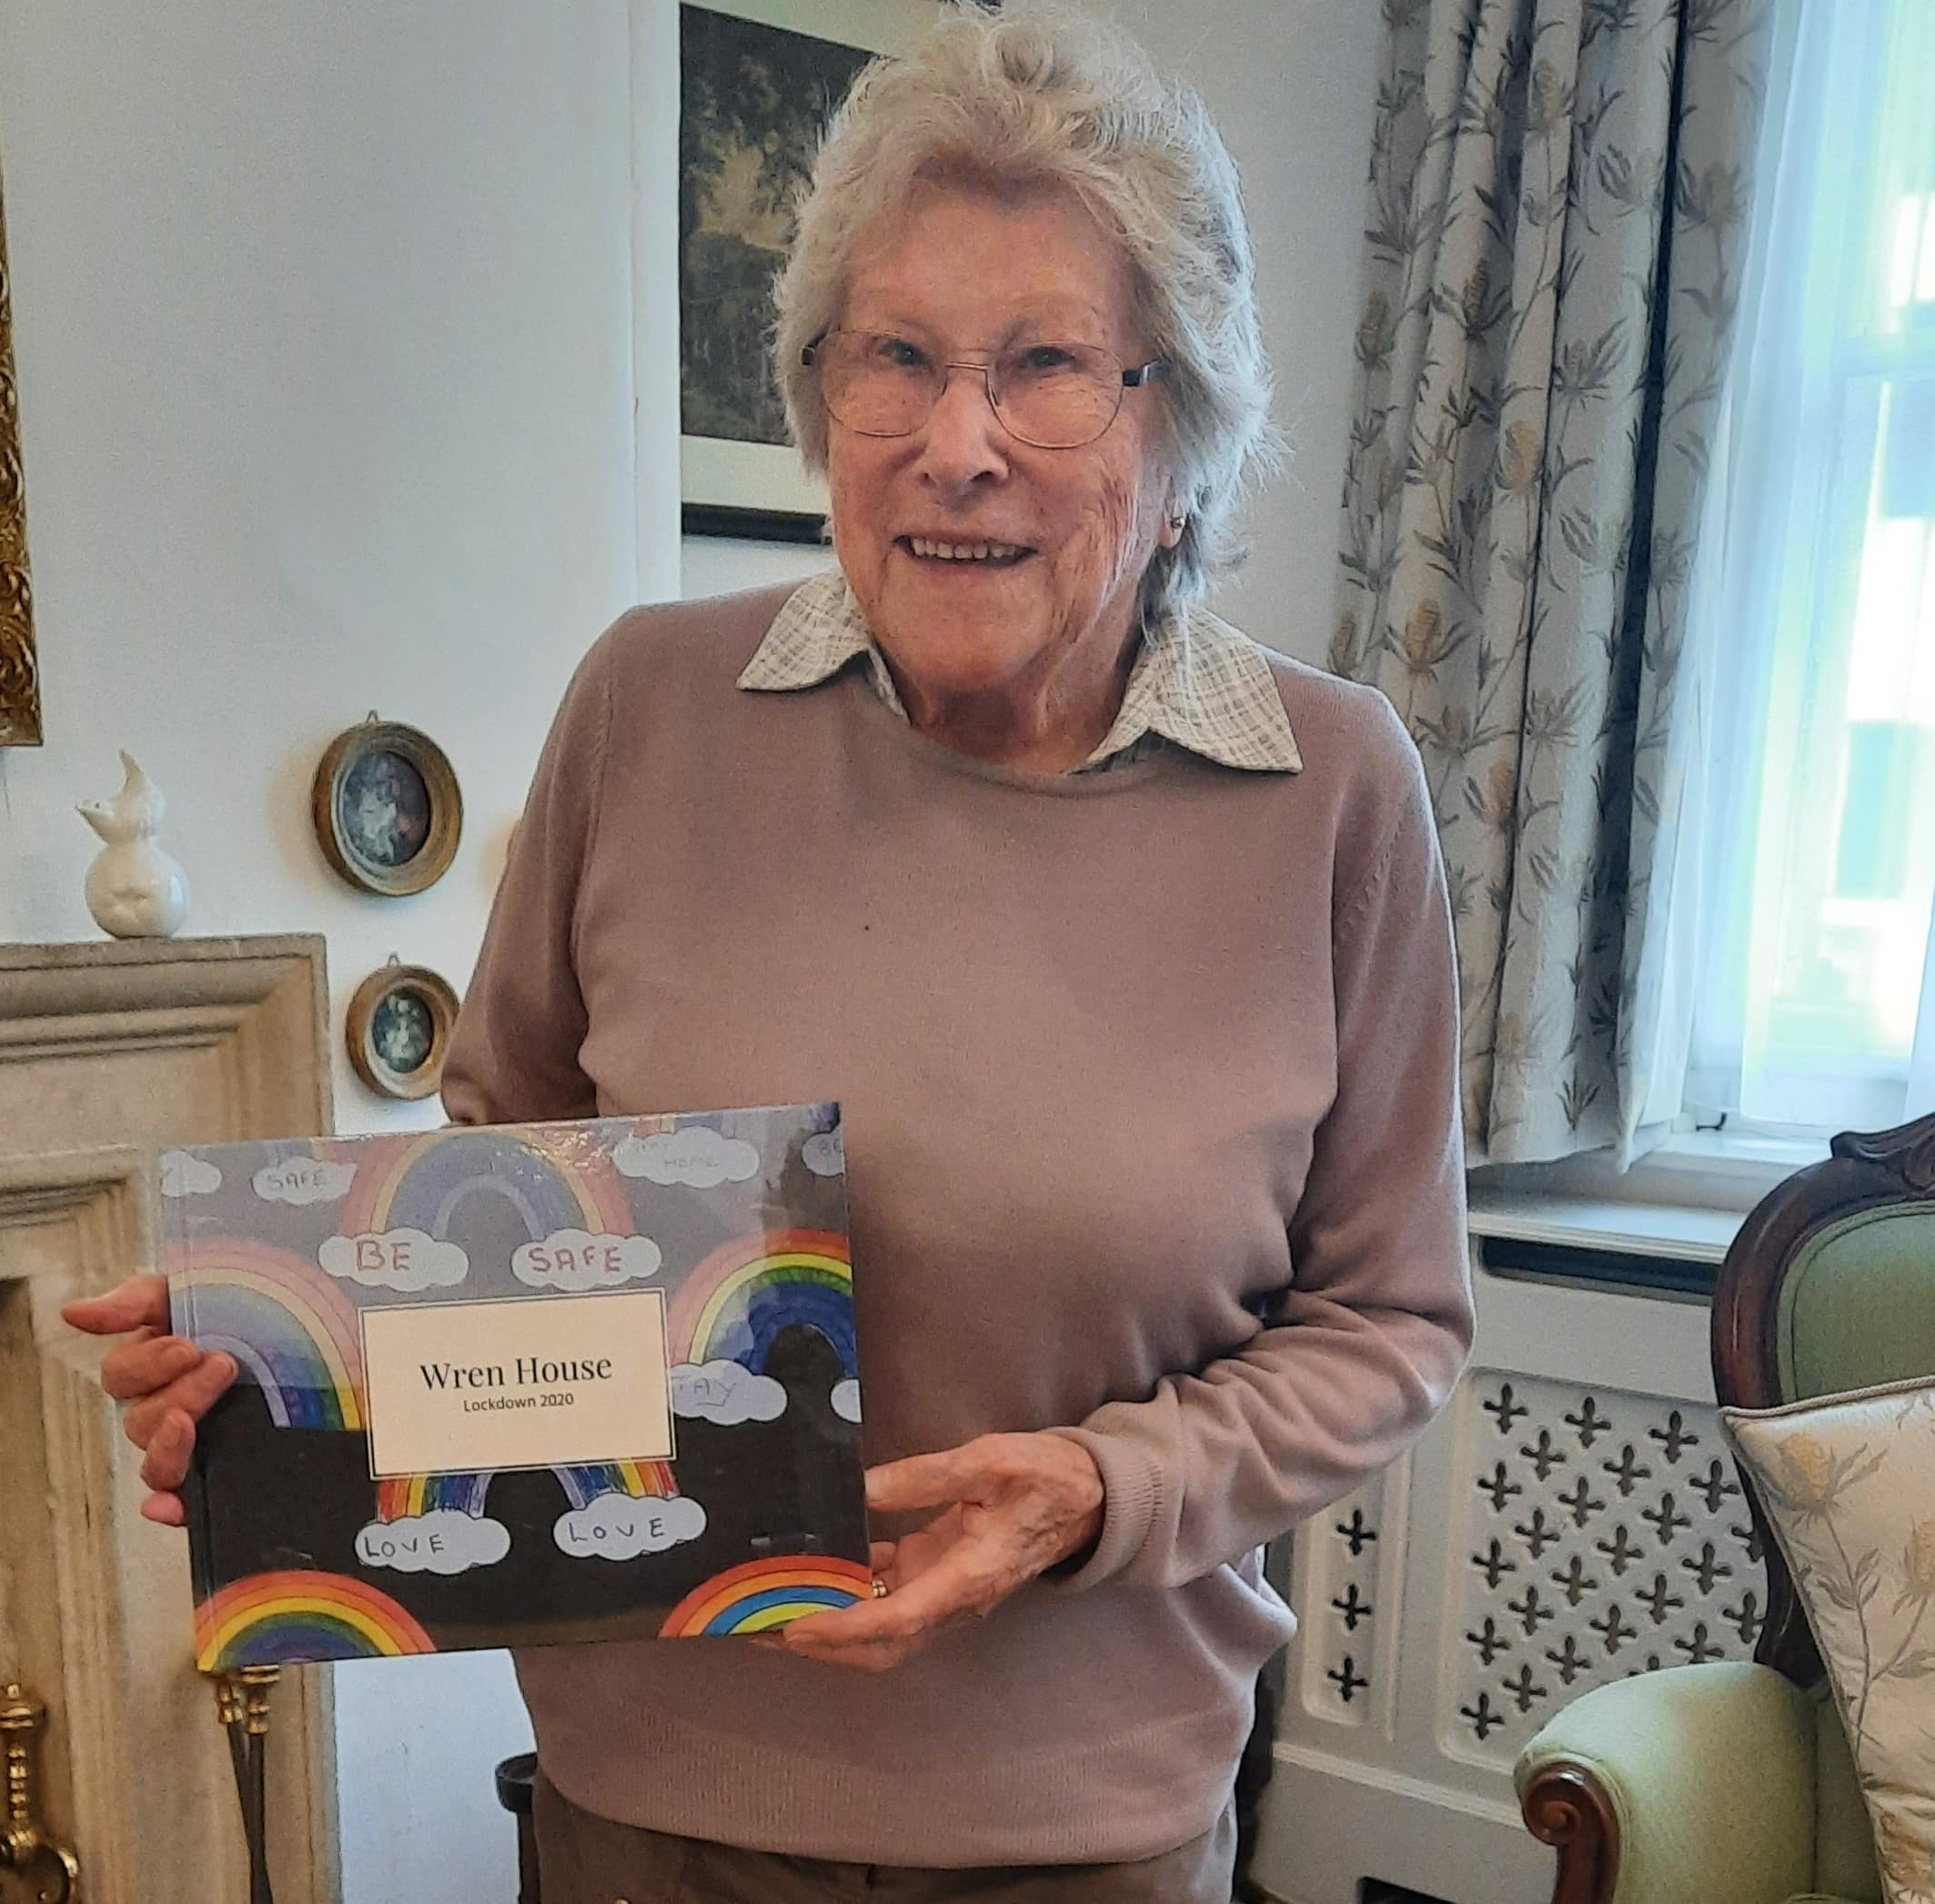 Wren House resident Pauline Taylor holding the Wren House book.